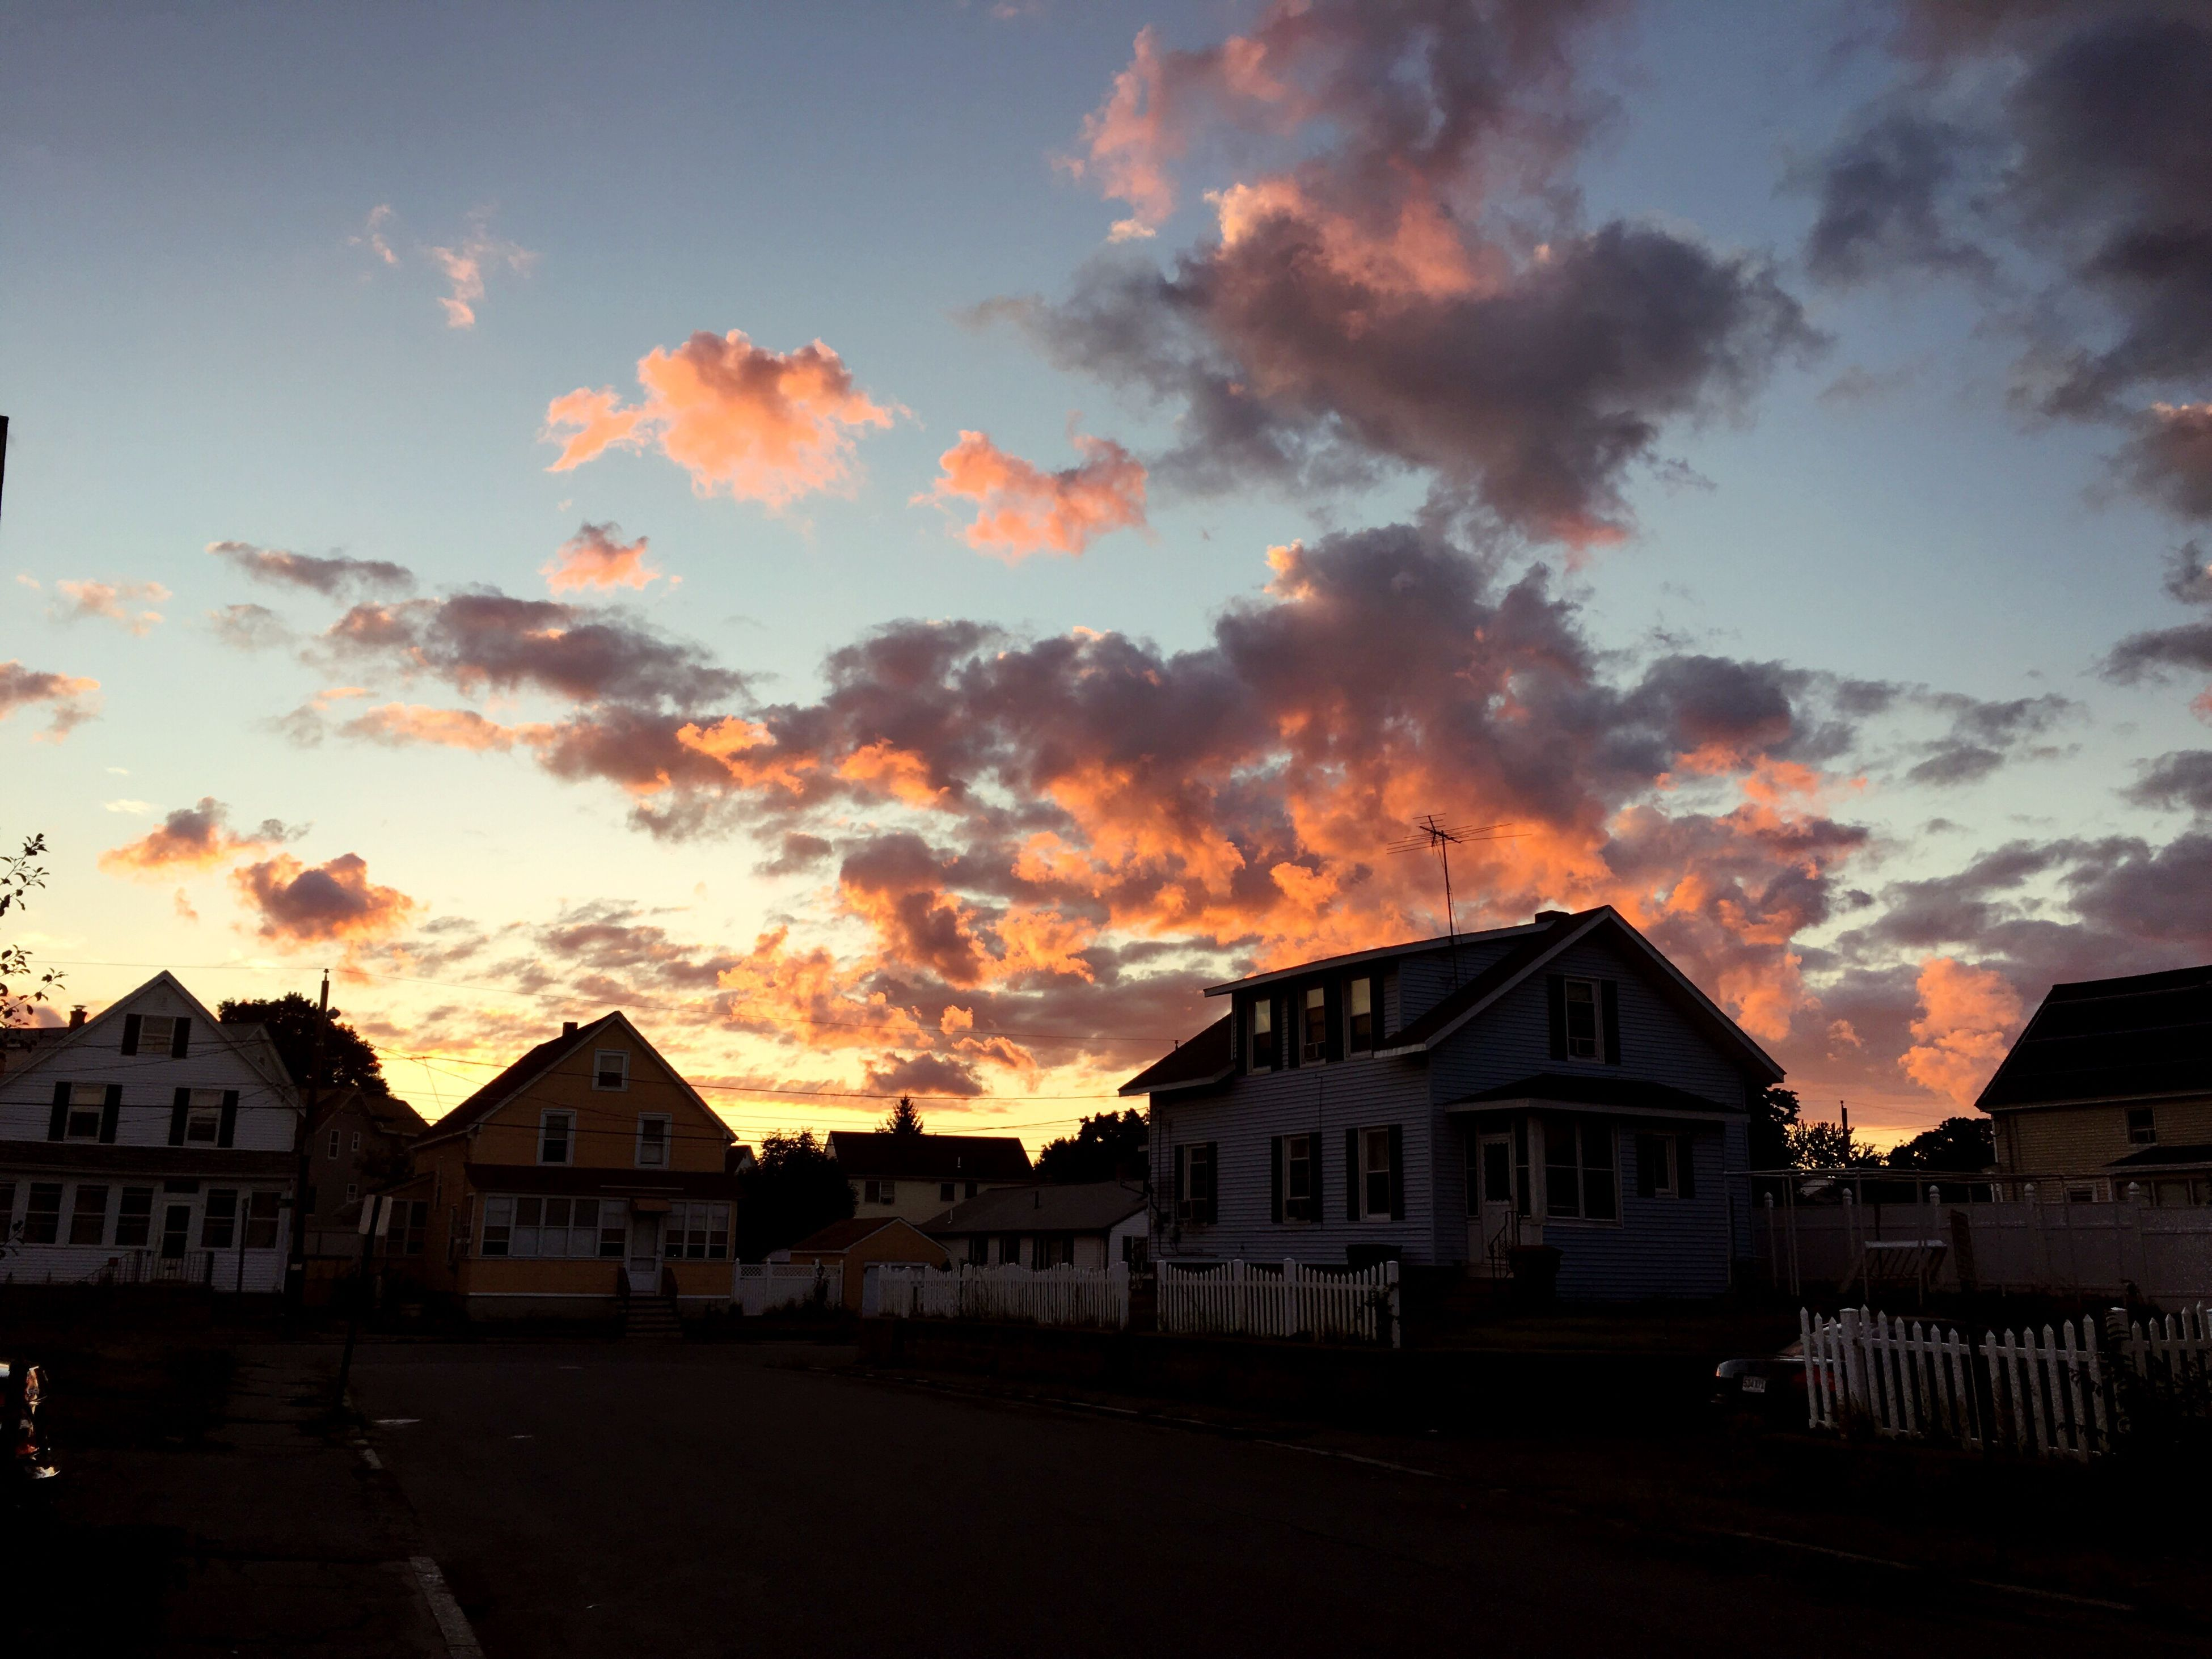 sunset, architecture, built structure, building exterior, house, sky, cloud, cloud - sky, scenics, cloudy, orange color, calm, outdoors, tranquil scene, exterior, no people, tranquility, majestic, town, beauty in nature, outline